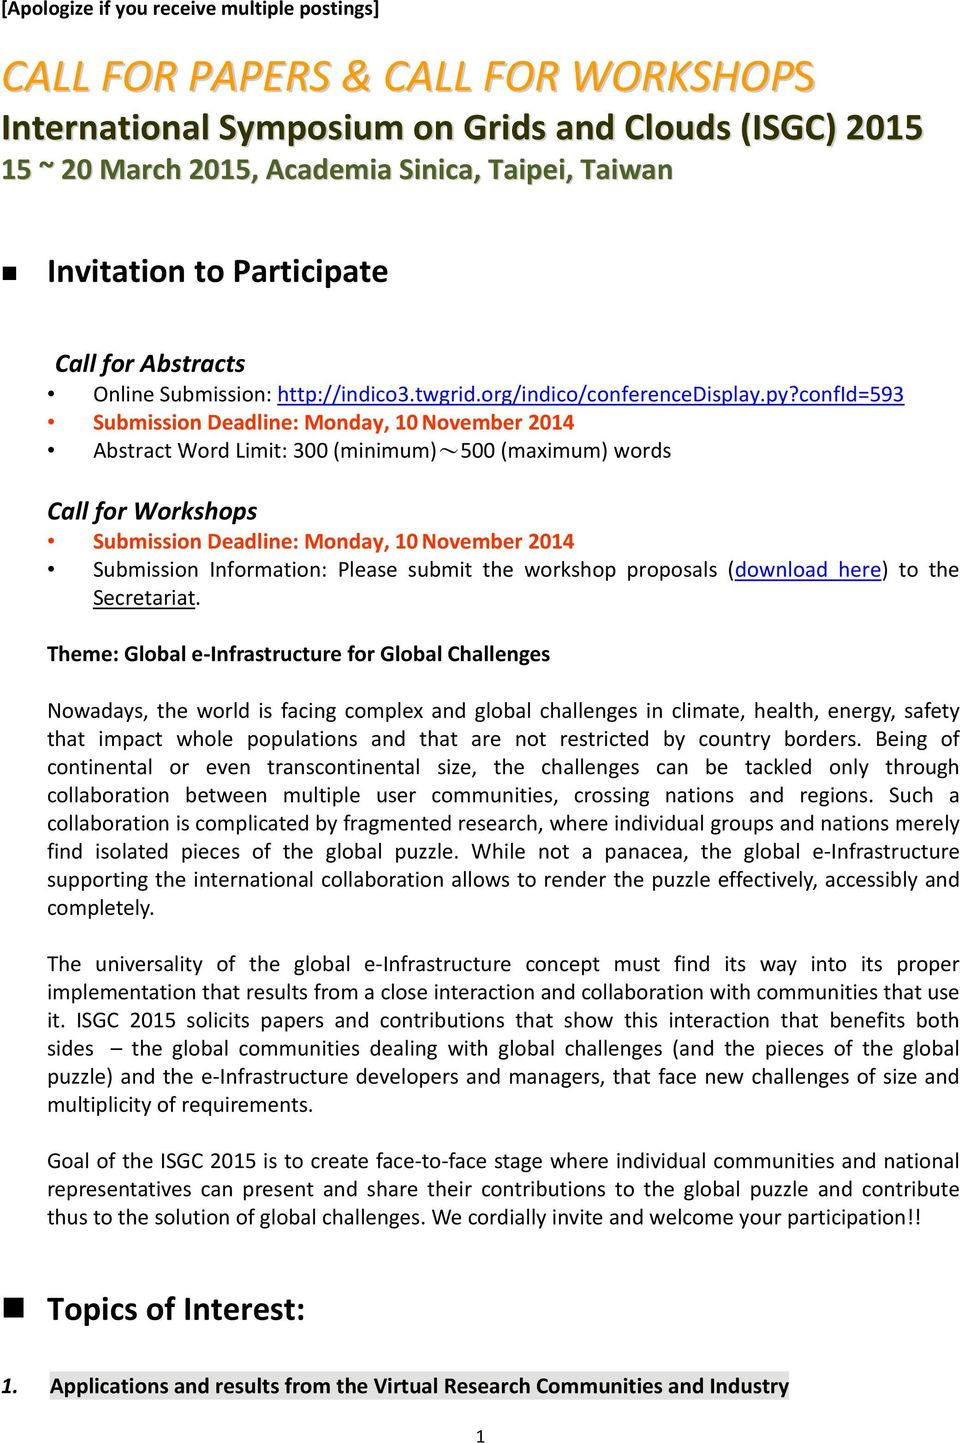 confid=593 Submission Deadline: Monday, 10 November 2014 Abstract Word Limit: 300 (minimum)~500 (maximum) words Call for Workshops Submission Deadline: Monday, 10 November 2014 Submission